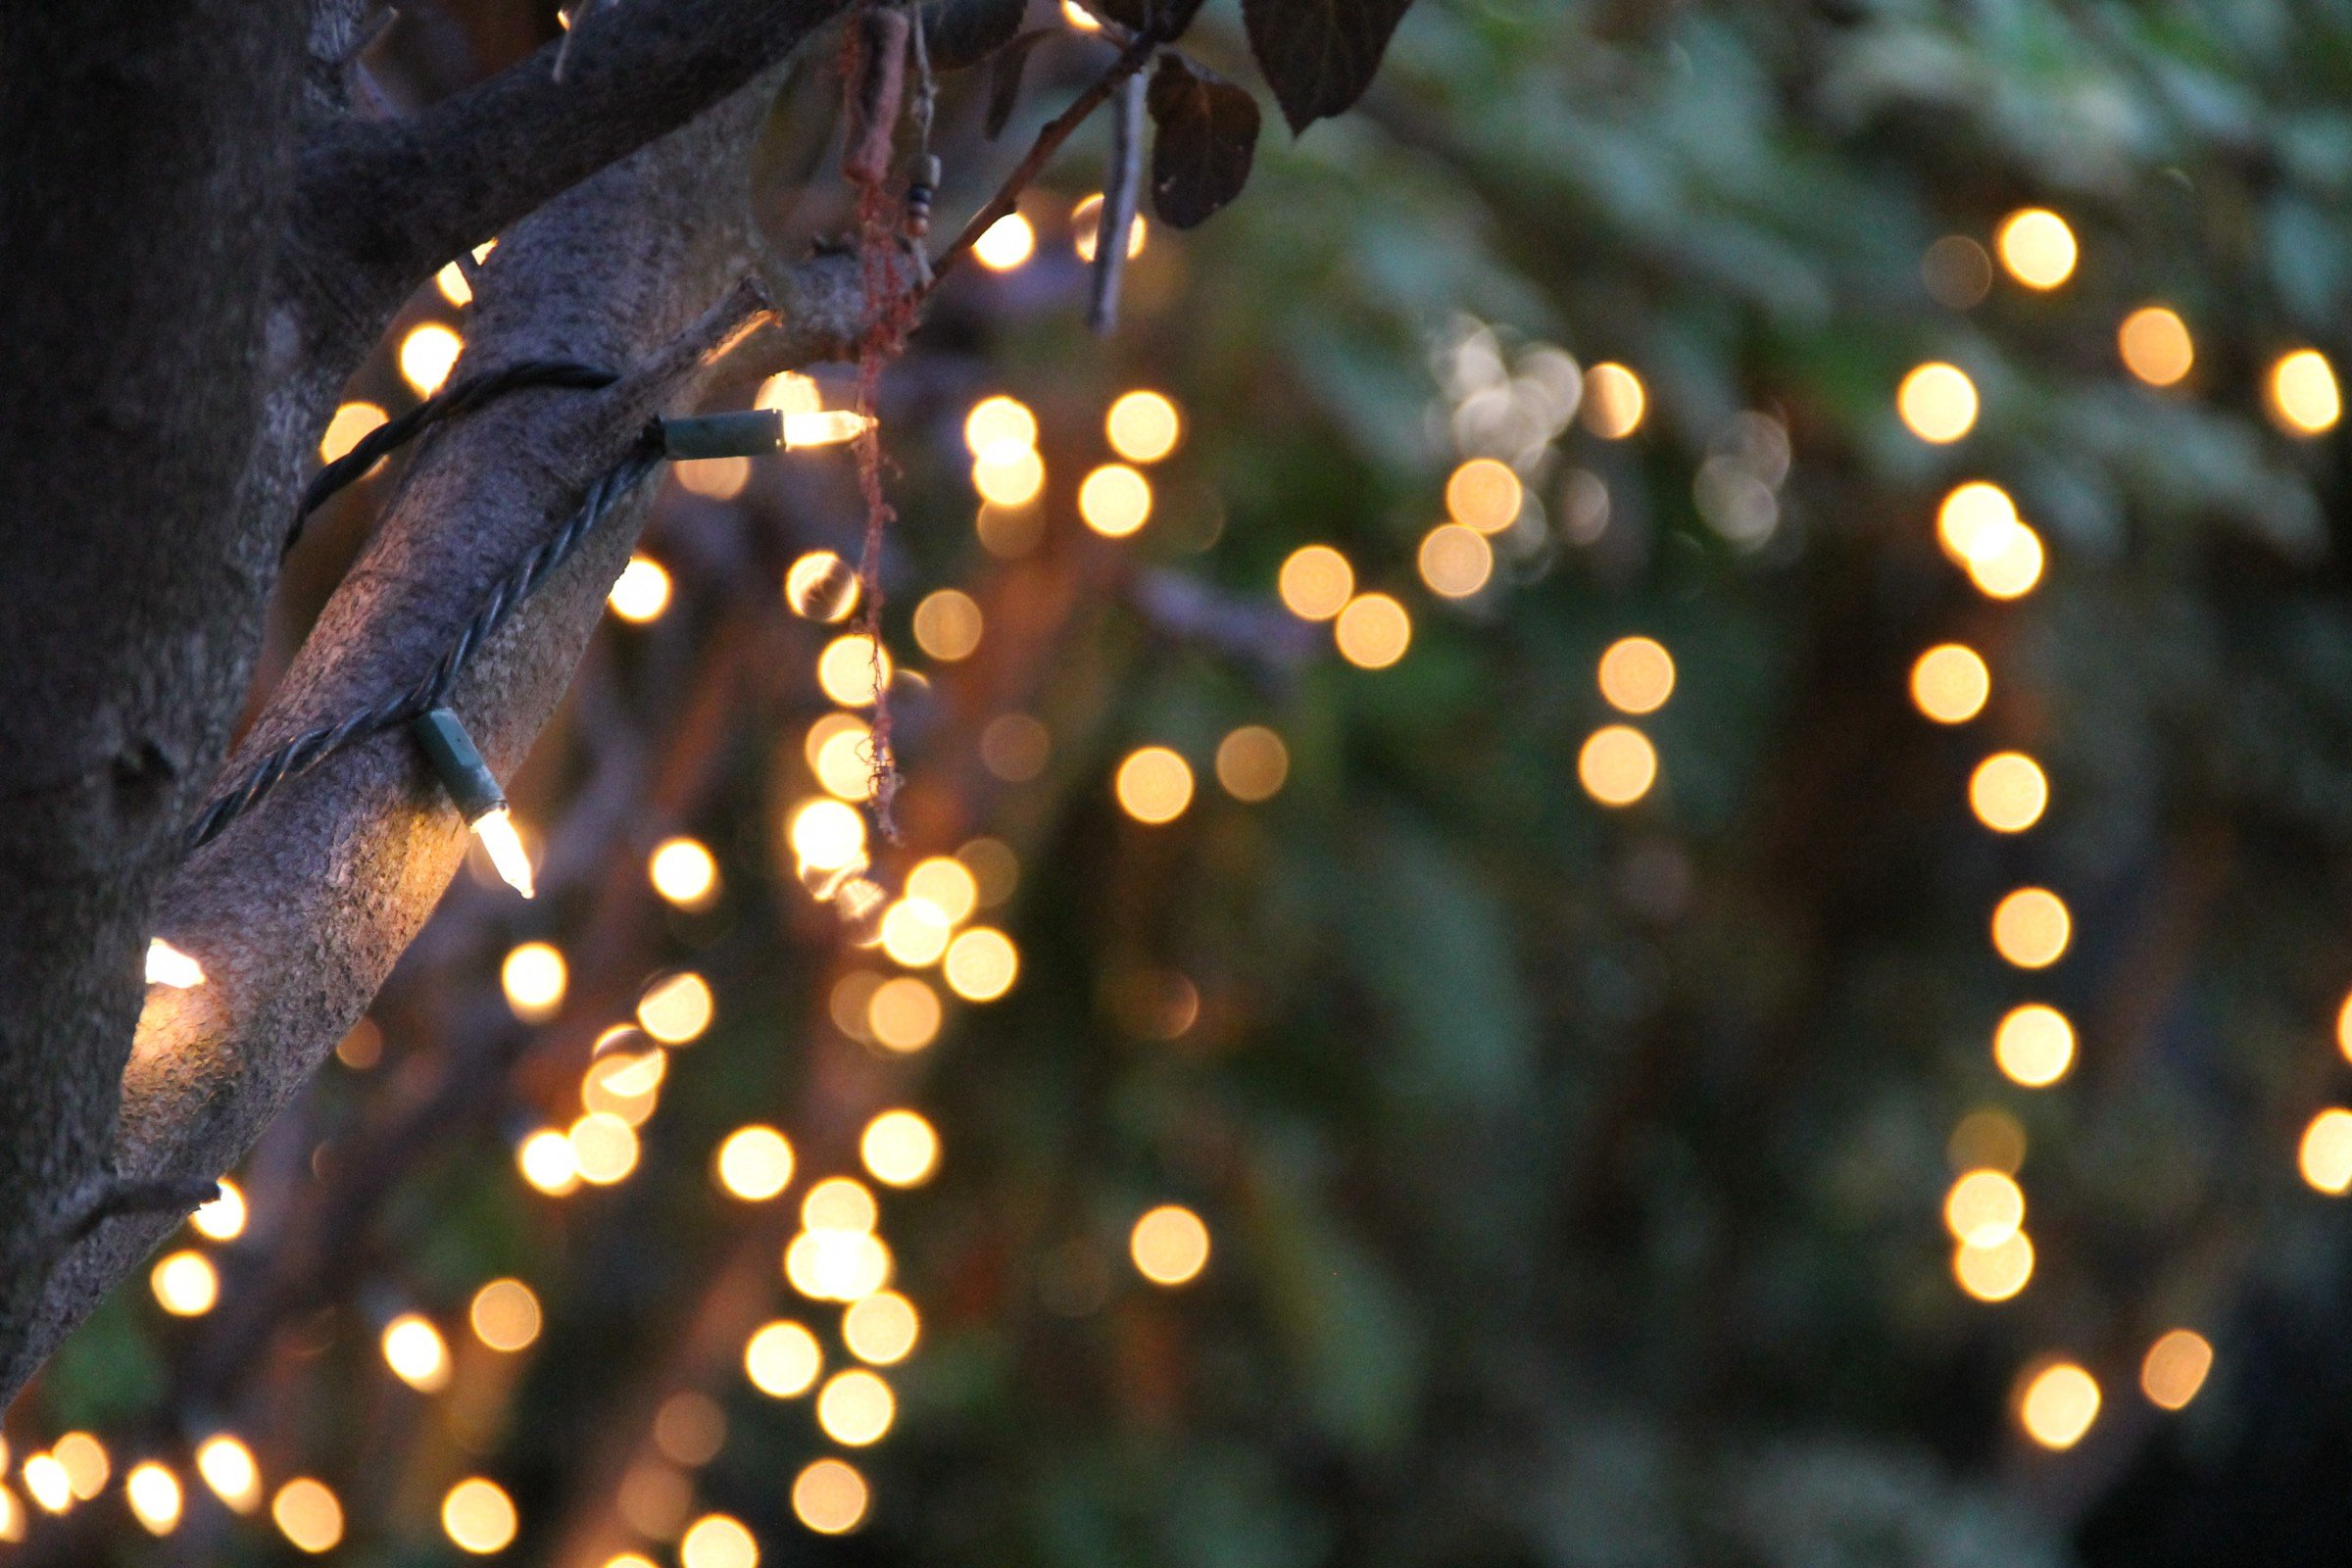 Backyard Decor Free Stock Photo Of Bokeh Of String Lights On Tree